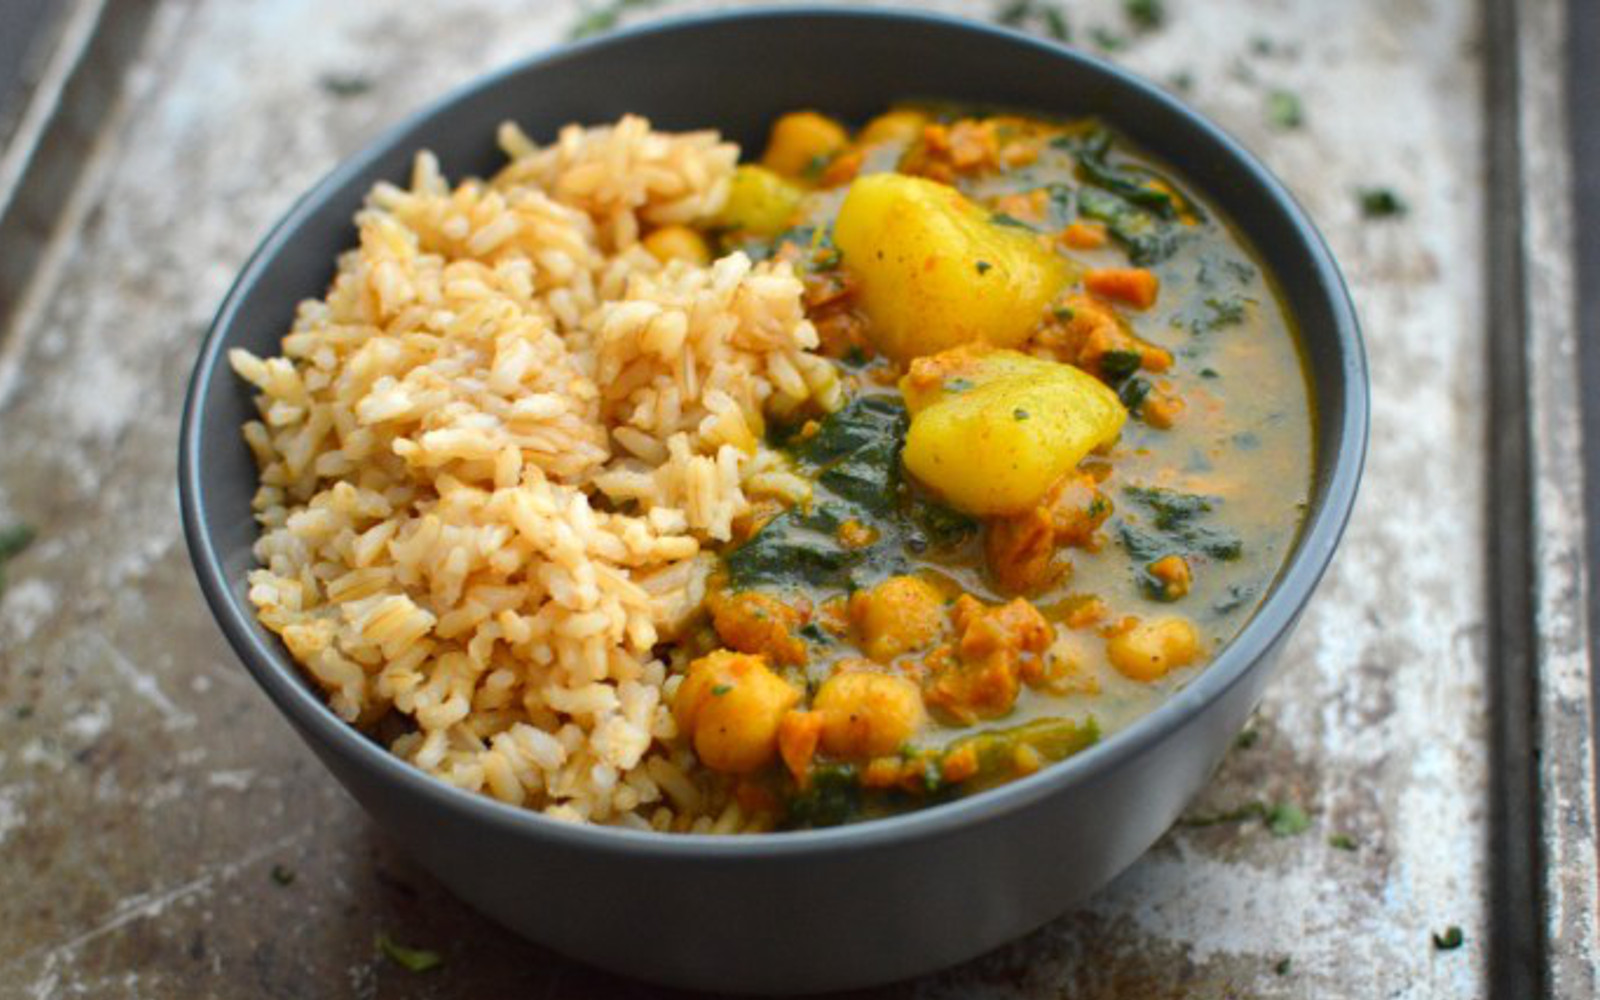 Vegan Gluten-Free Vegetable Protein Curry with a side of rice